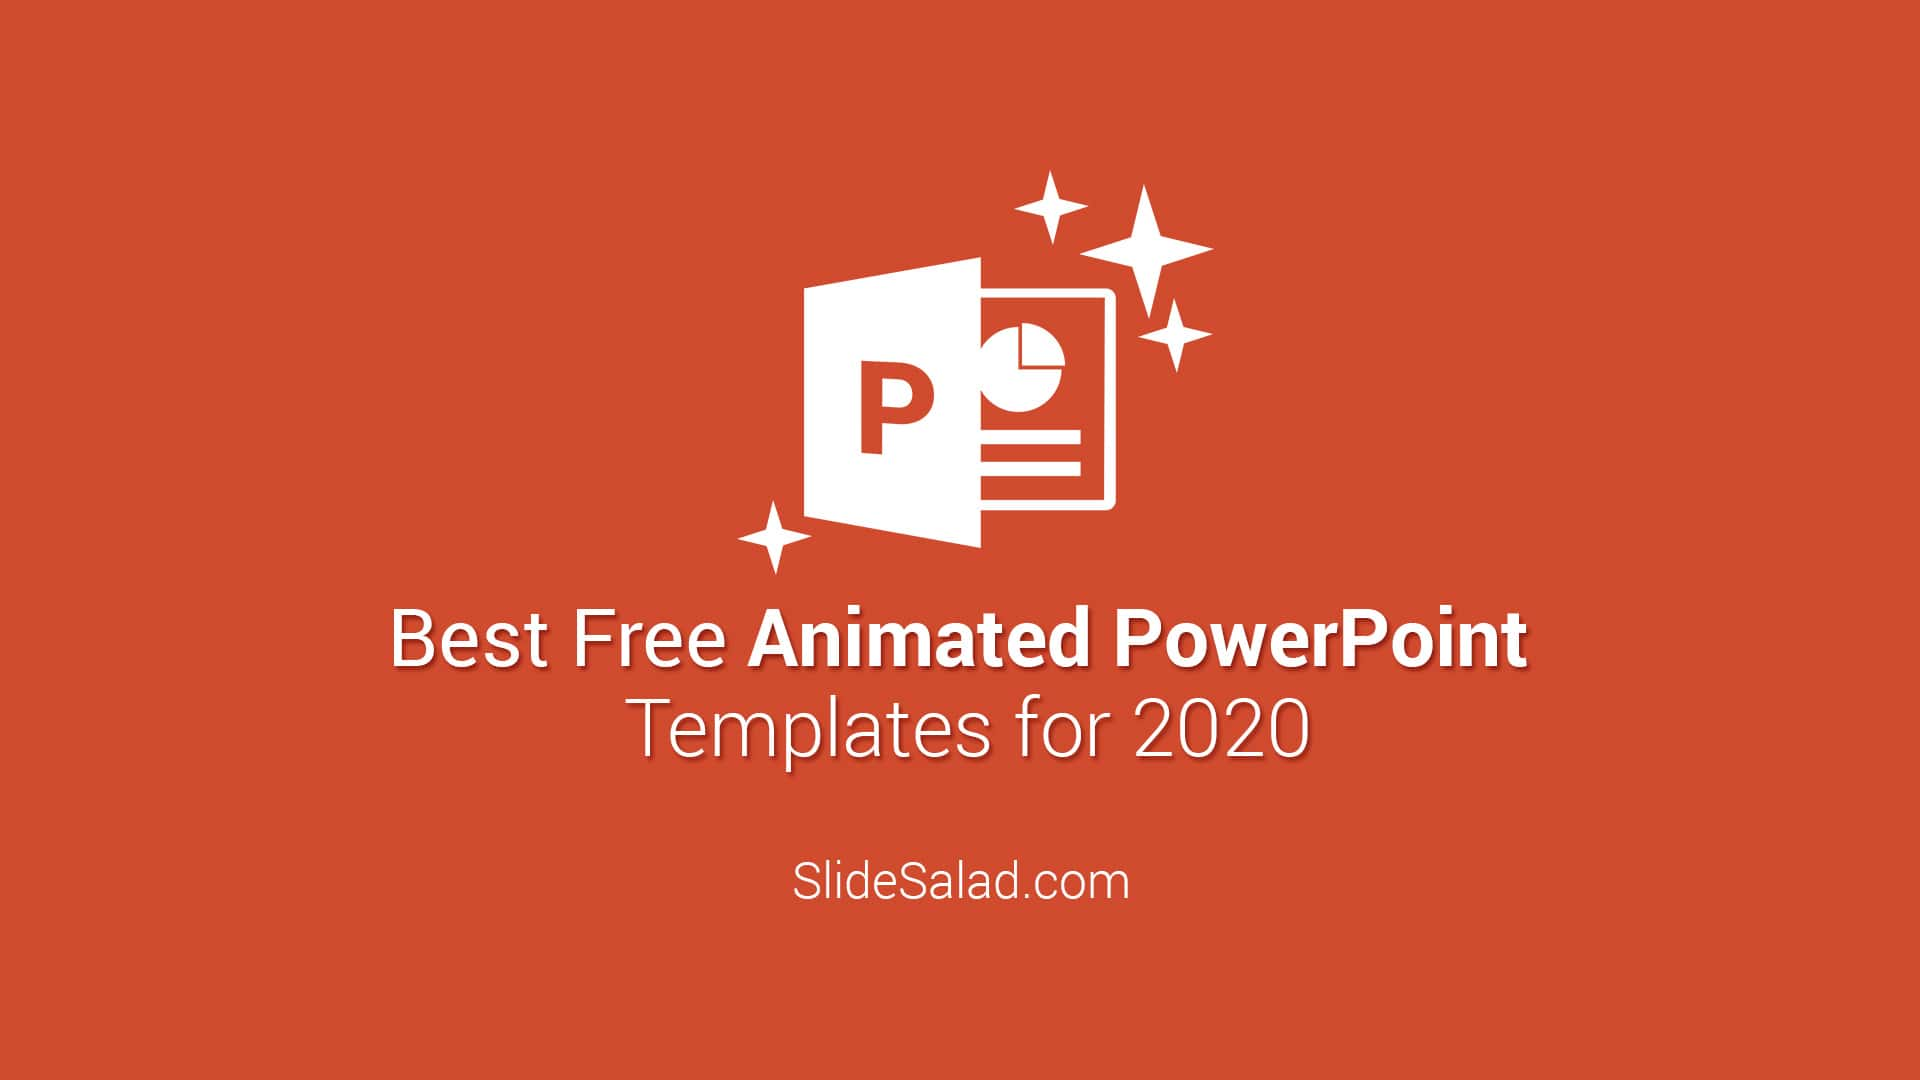 Best Free Animated PowerPoint Templates – Top Free Themes for PowerPoint Presentations